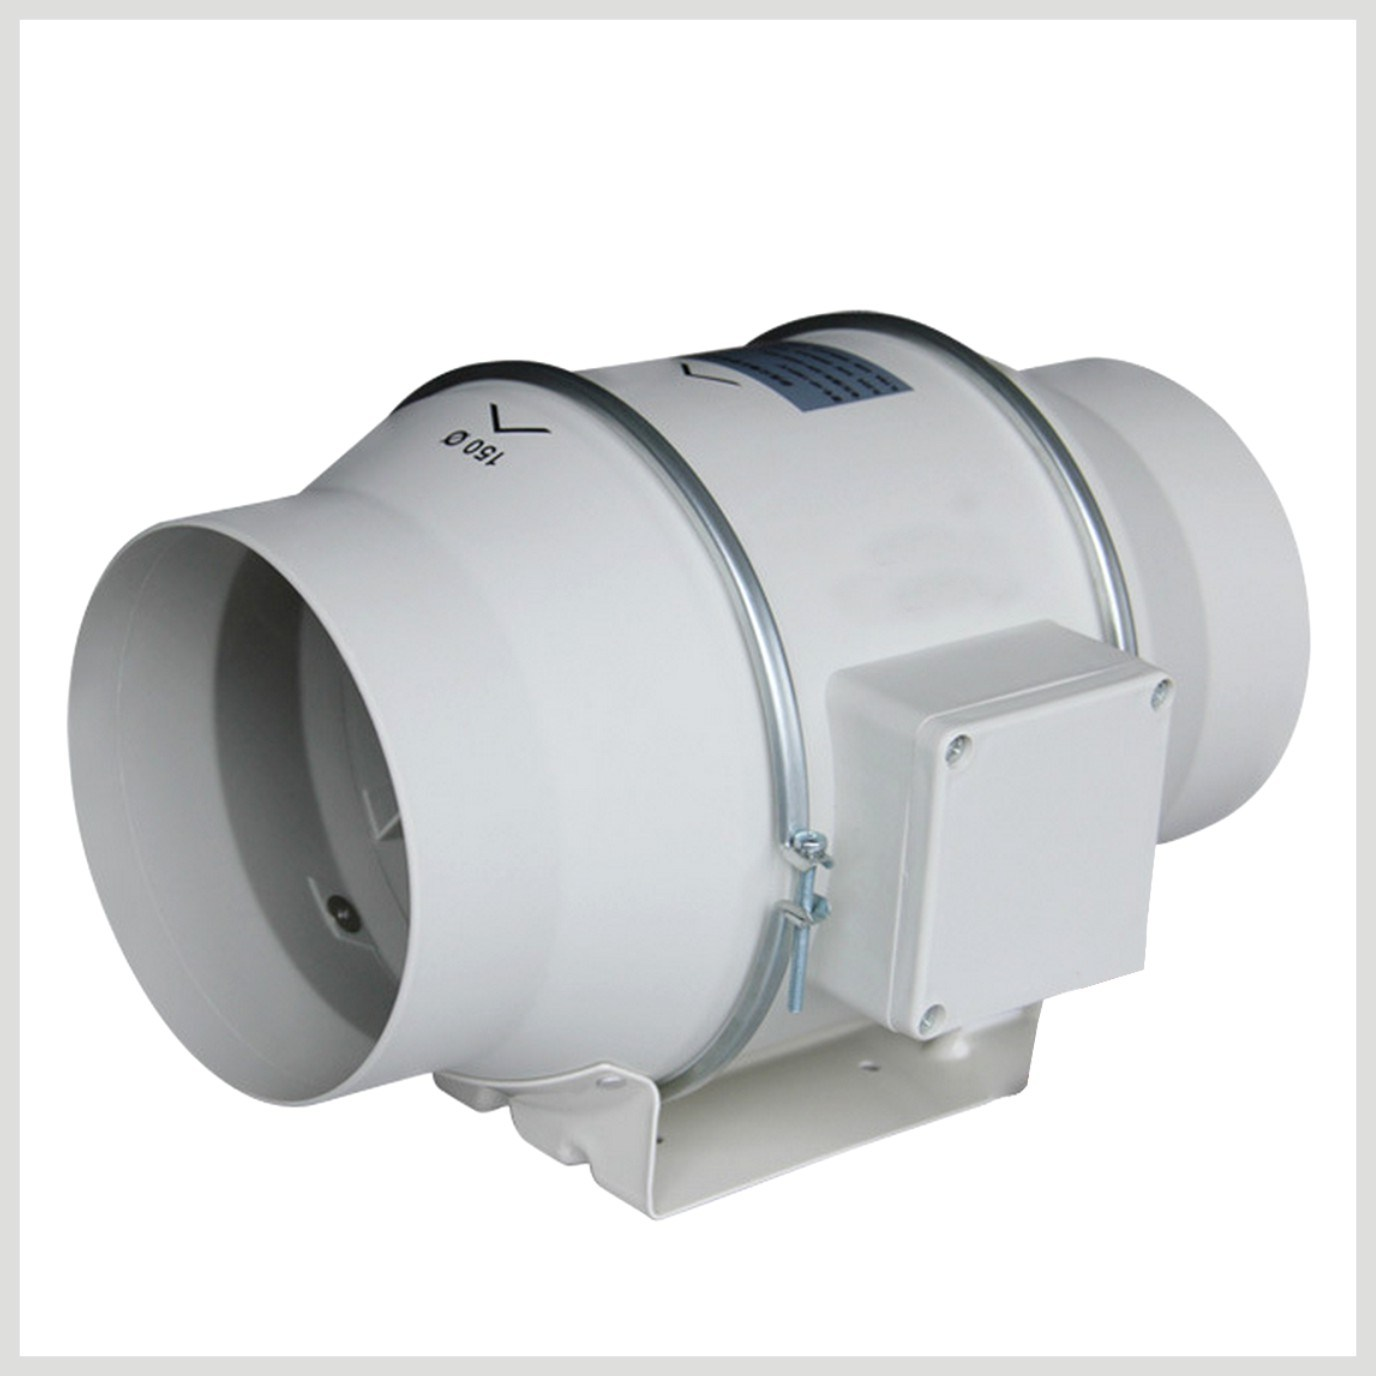 Kfl-150p Inline Duct Fan Ventilation Fan